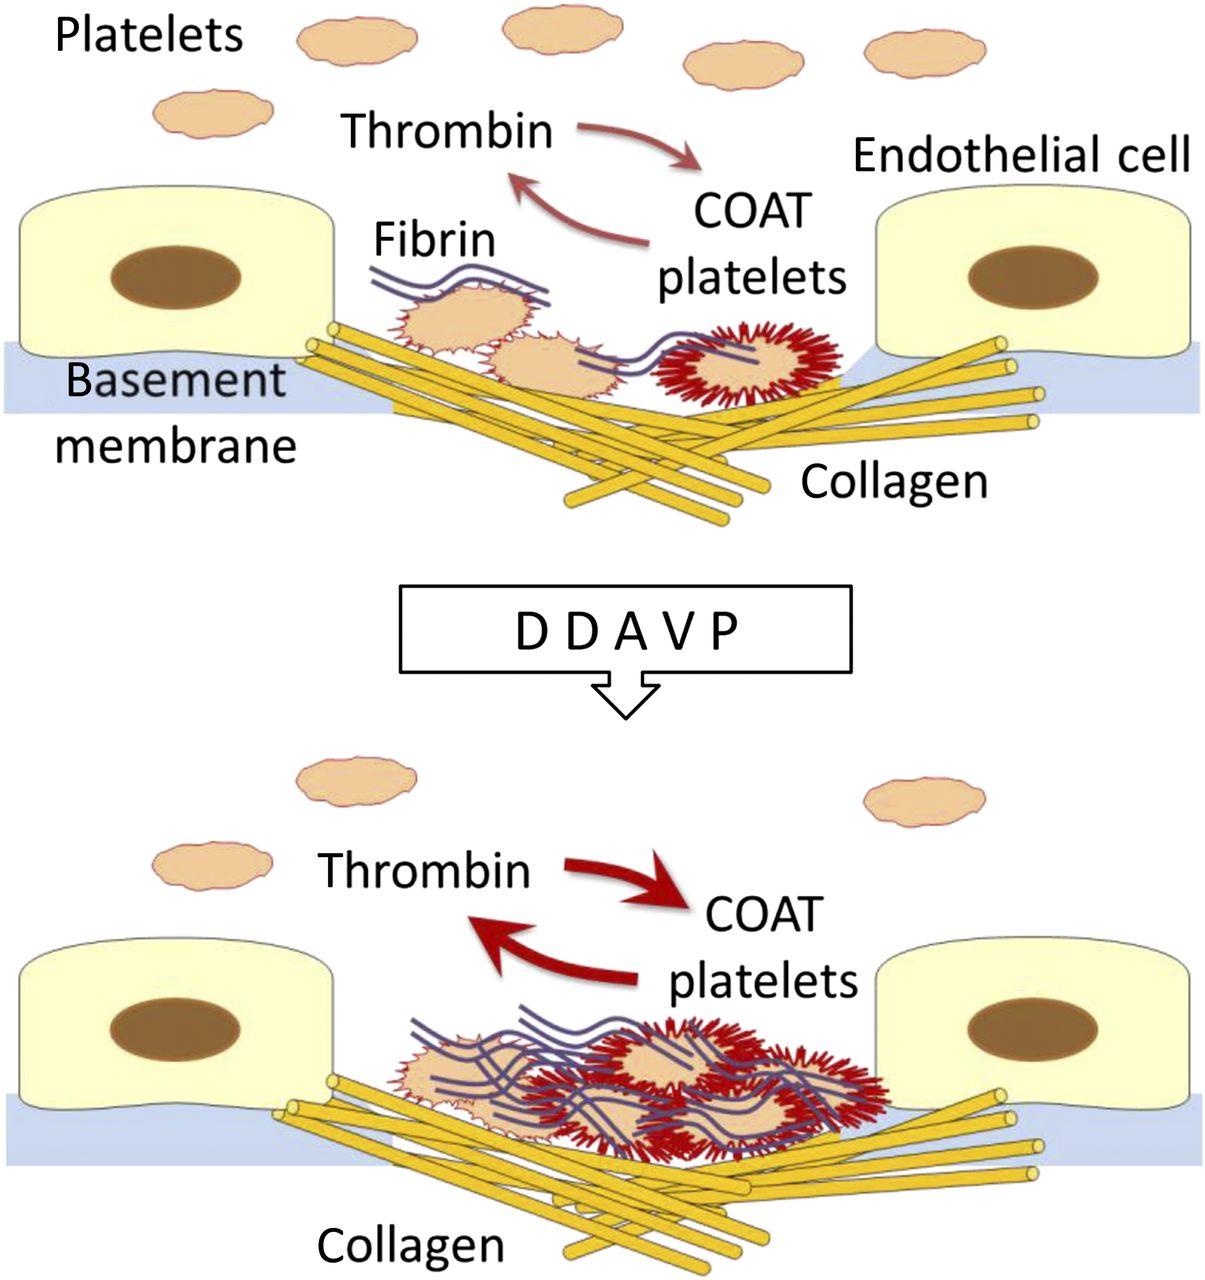 Cell clipart platelet. Desmopressin and super platelets